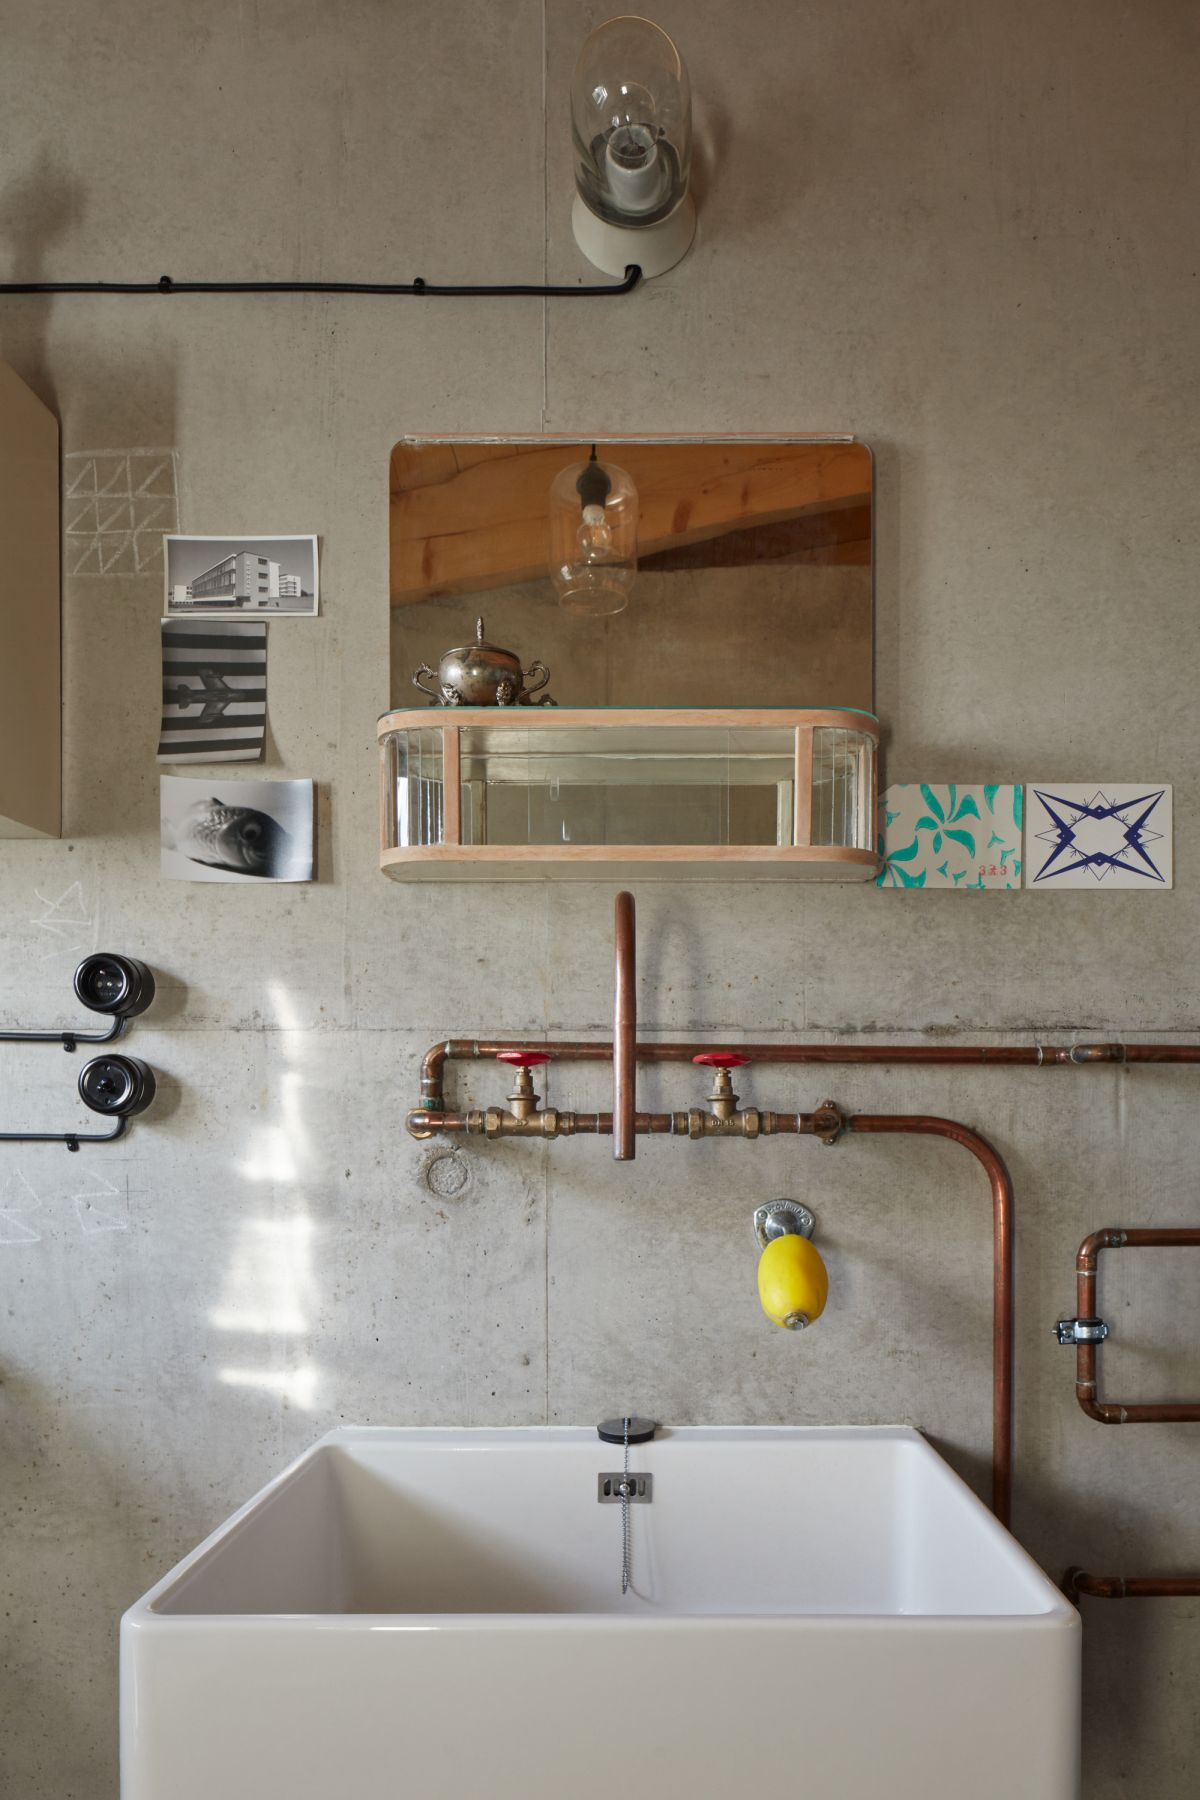 The en-suite bathroom has bare walls and exposed pipes which double as decorative elements